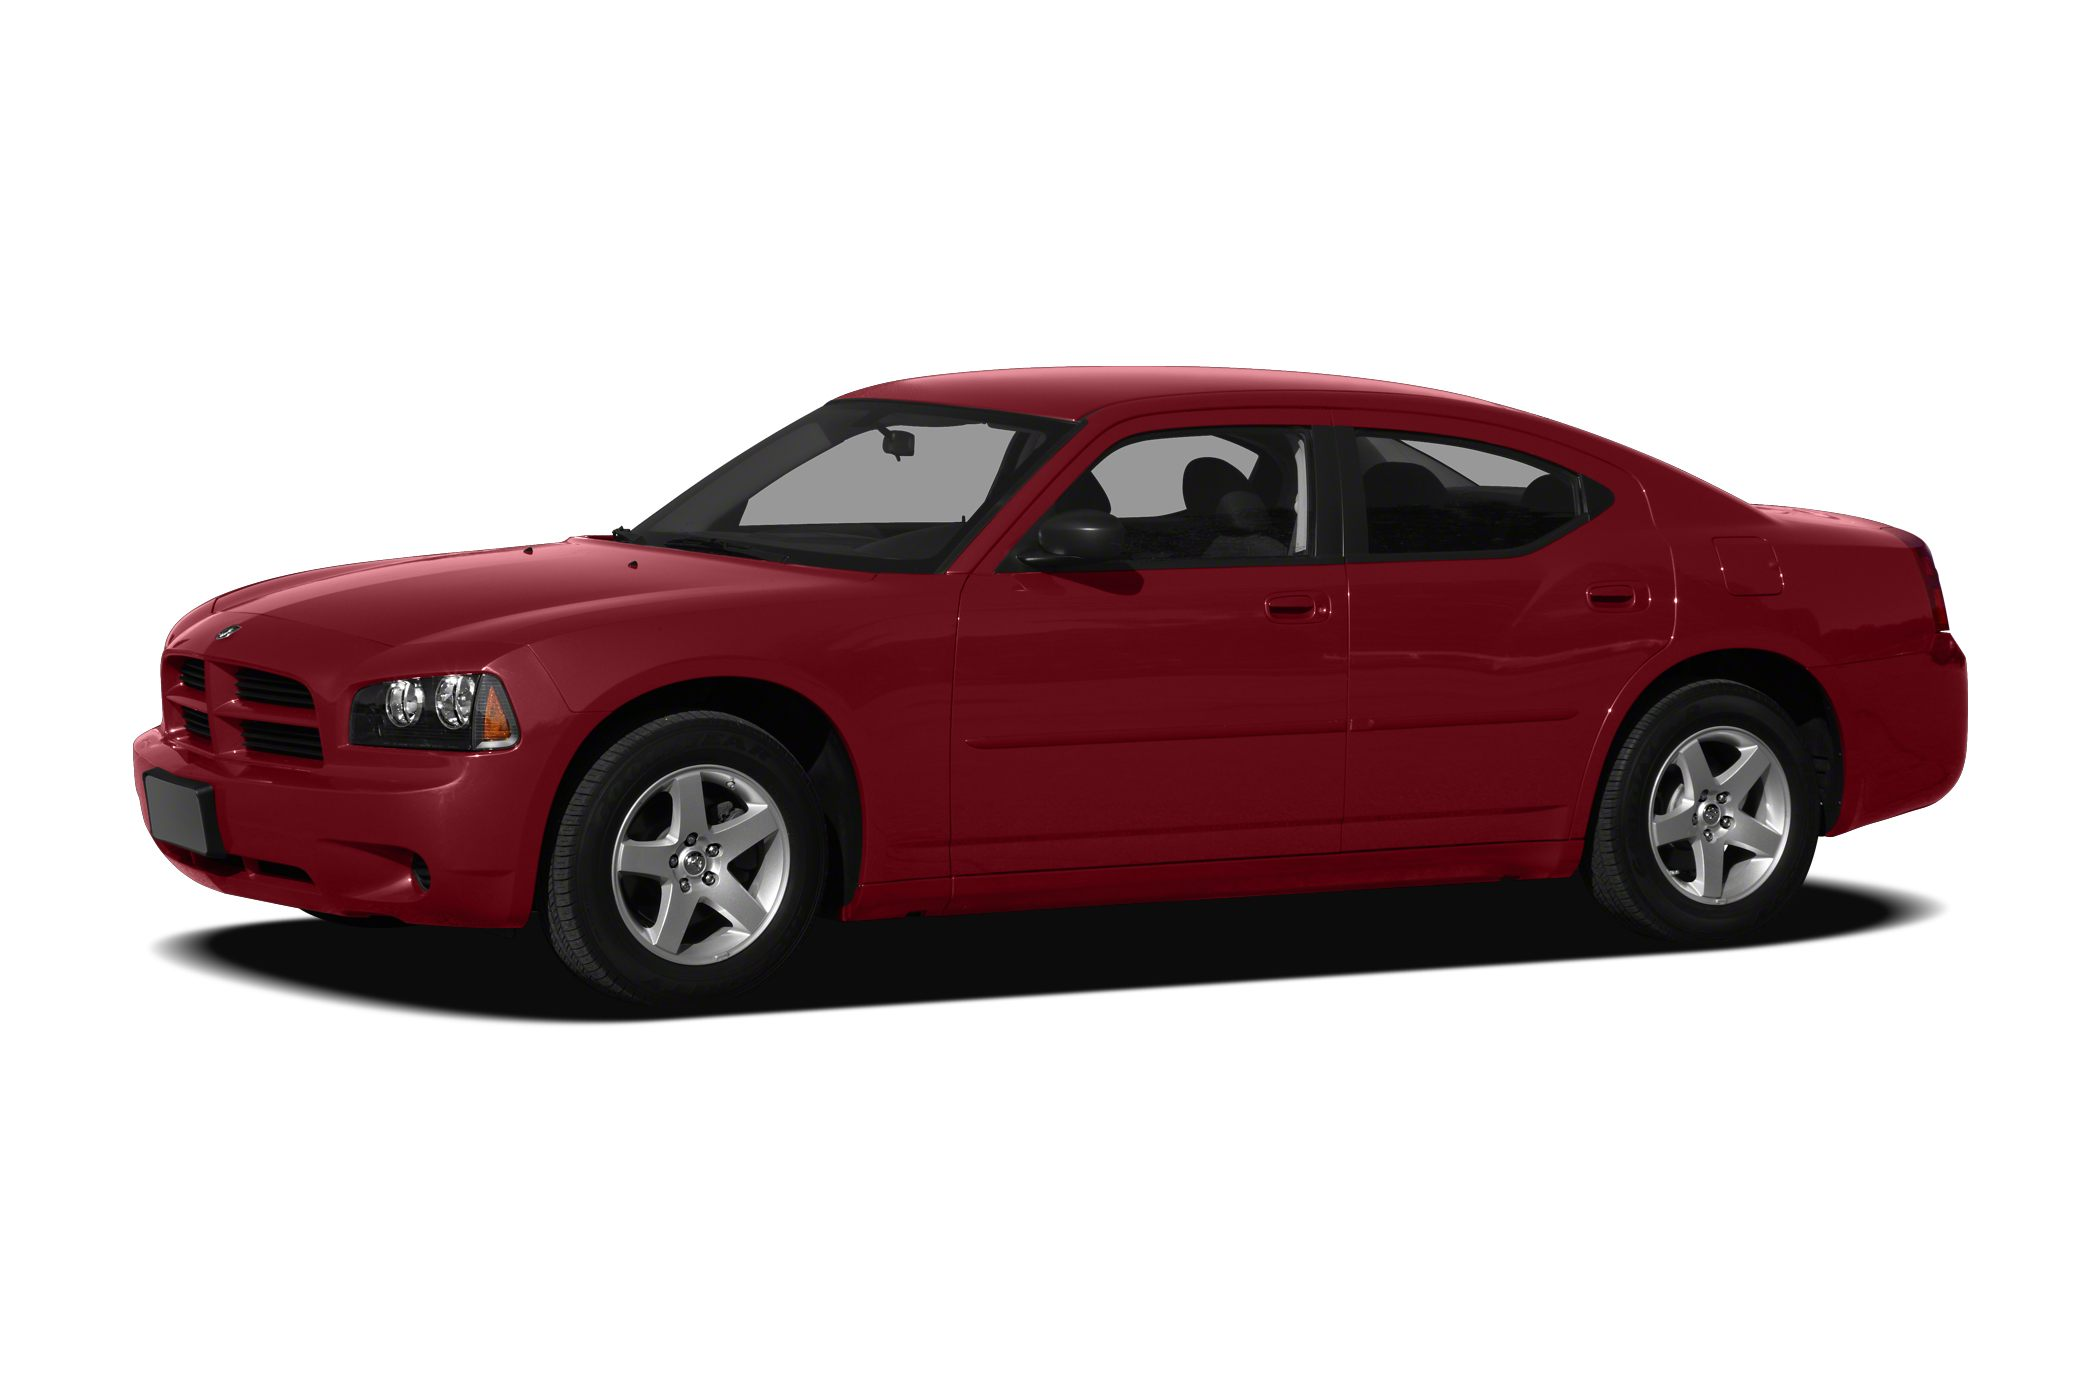 2010 Dodge Charger SXT Sedan for sale in Kingman for $14,777 with 43,842 miles.